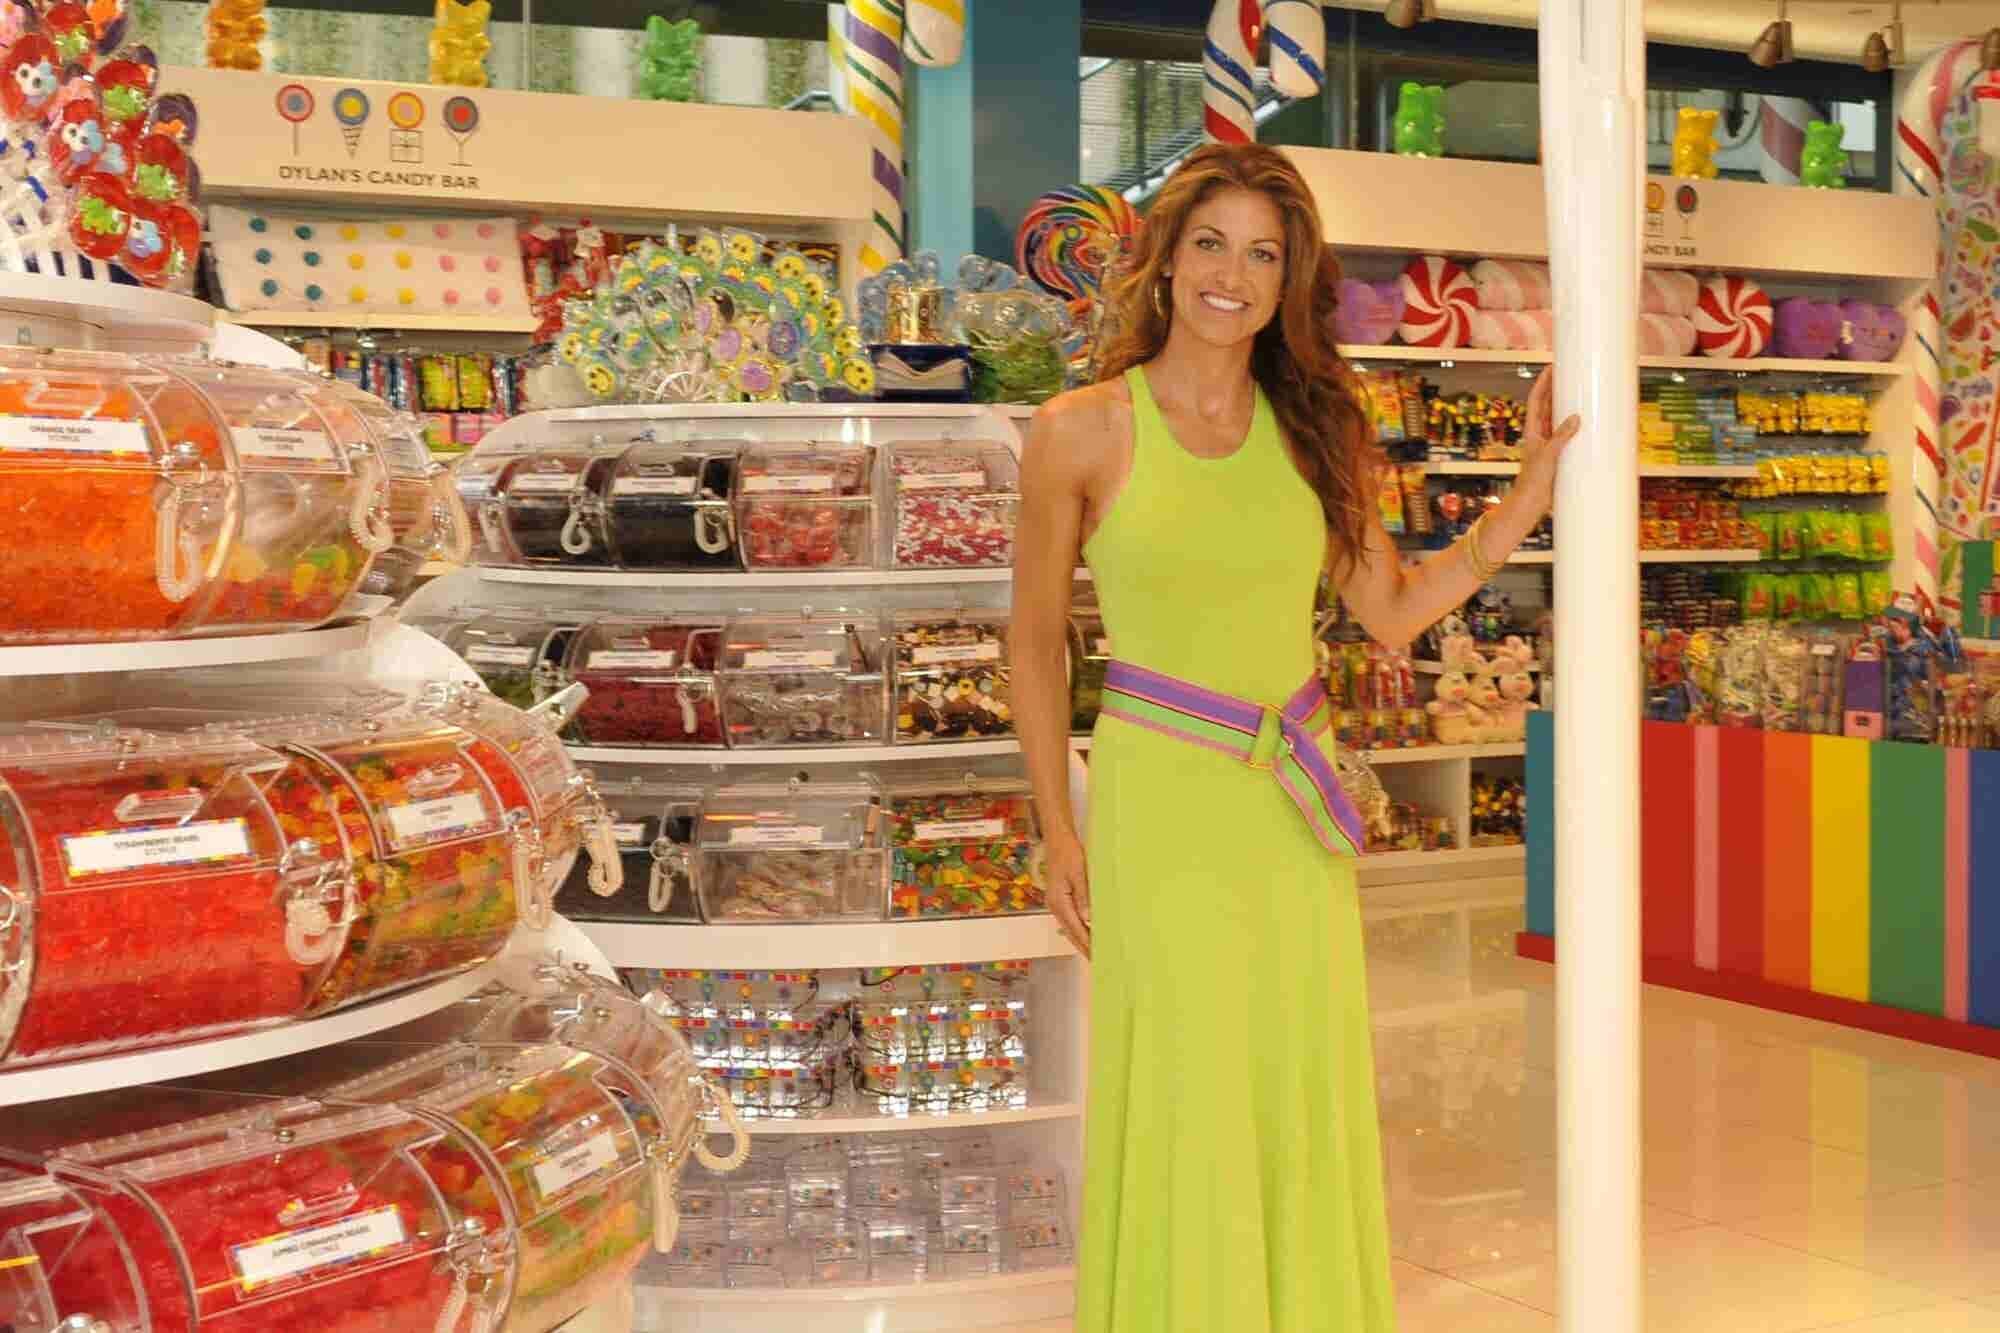 A Sweet Day in the Life of Dylan Lauren, the Founder of Dylan's Candy Bar